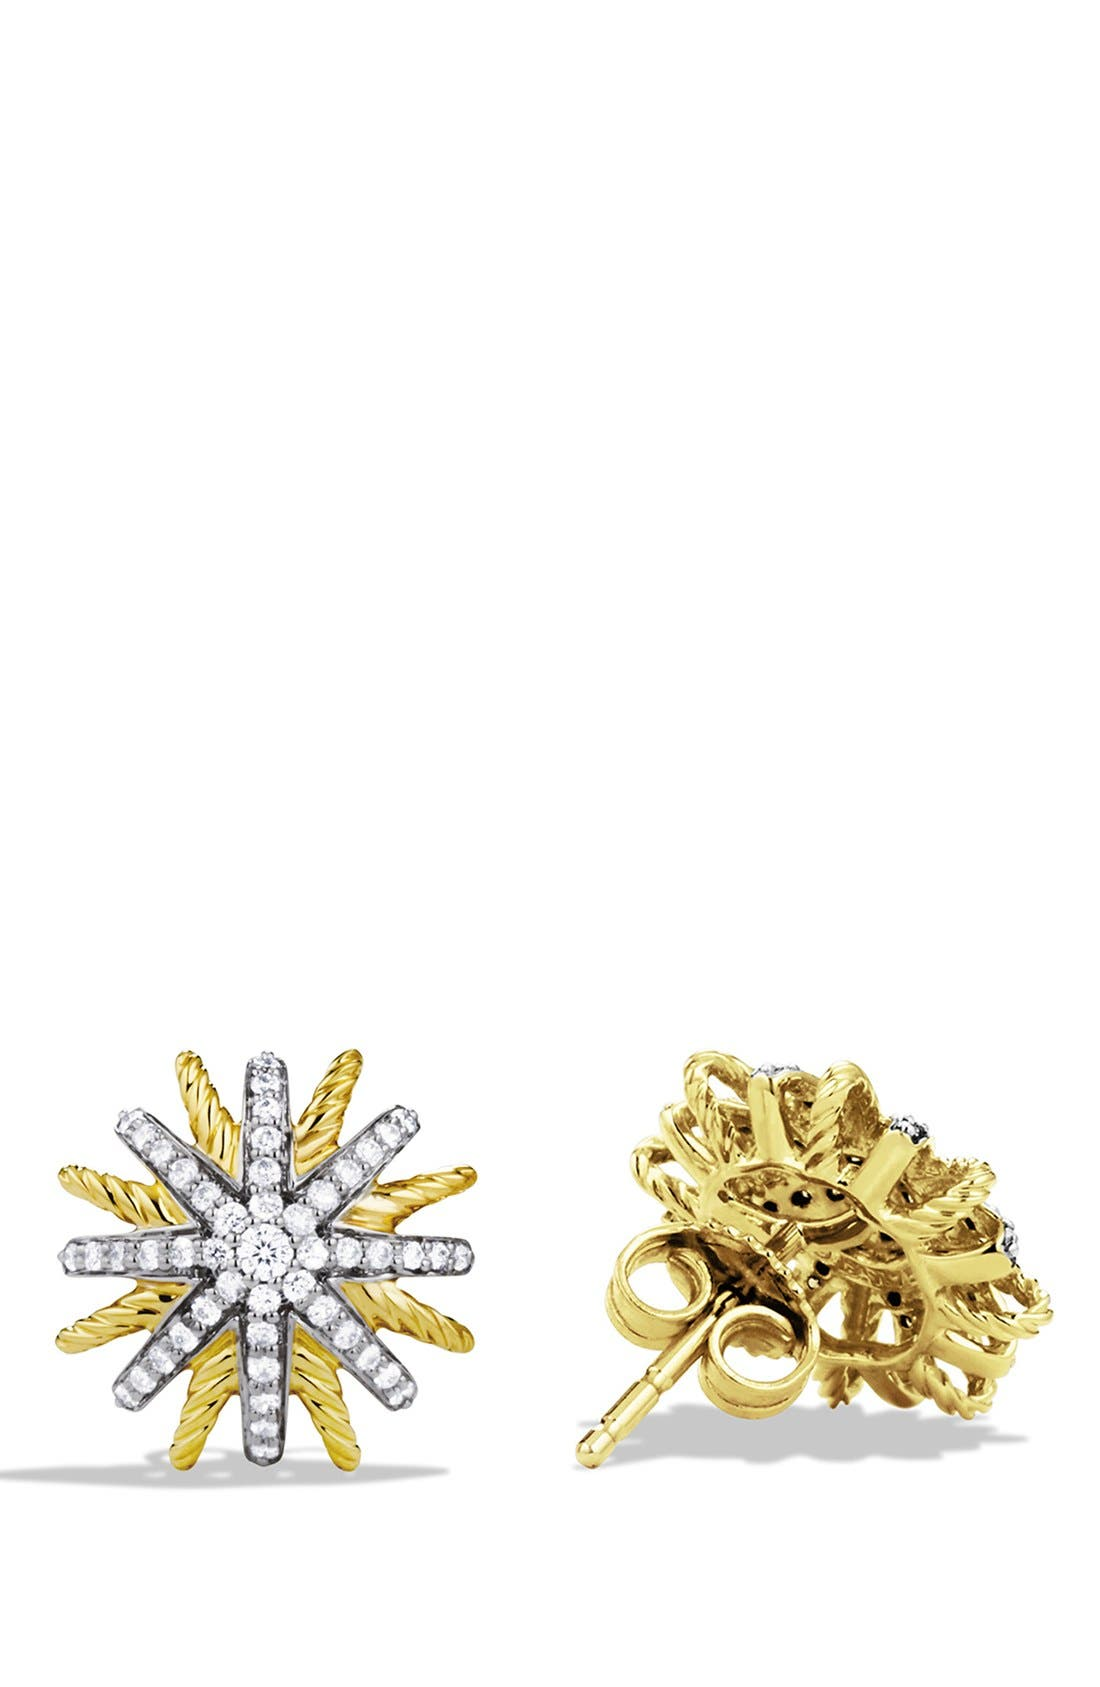 'Starburst' Extra-Small Earrings with Diamonds in Gold,                             Alternate thumbnail 3, color,                             710